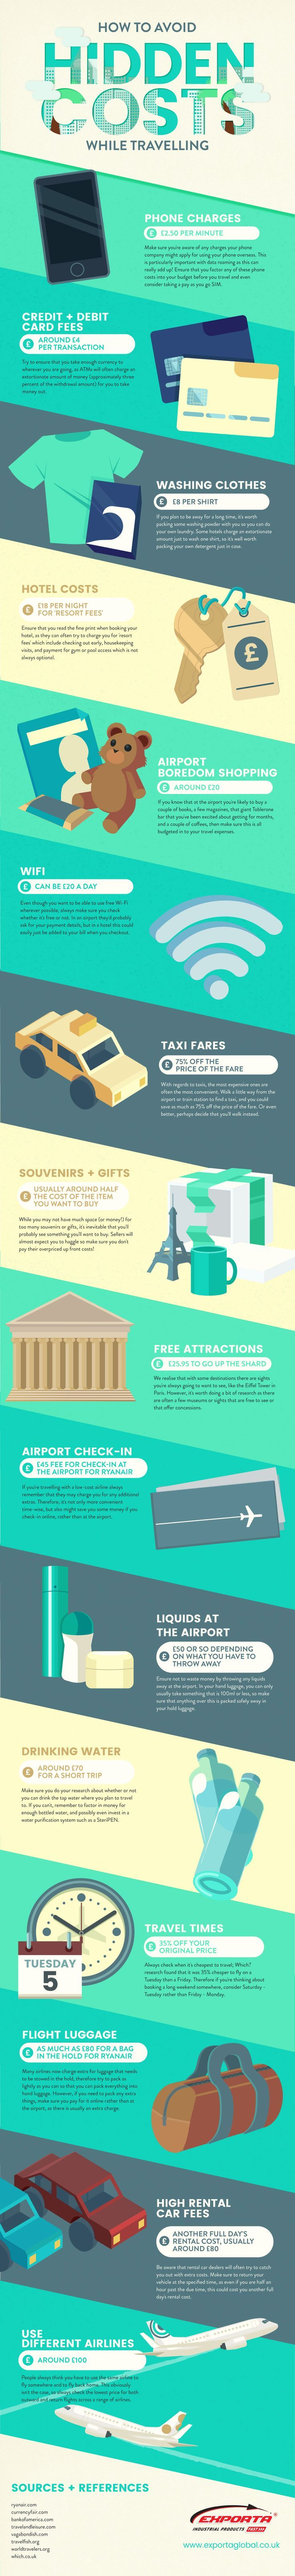 How to Avoid Hidden Costs While Travelling #Infographic #Travel #HowTo